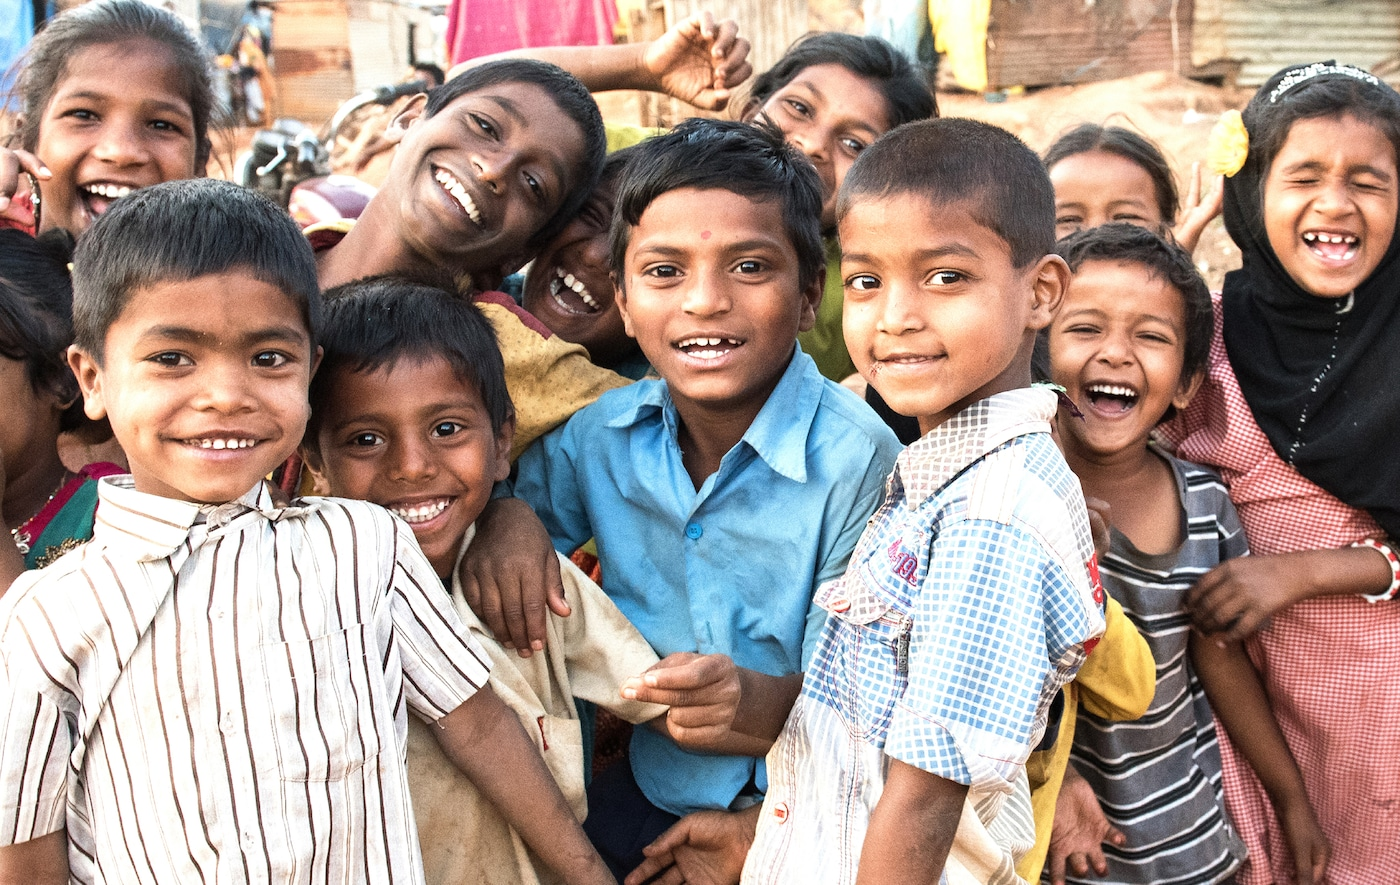 A group of boys and girls smiling and laughing.